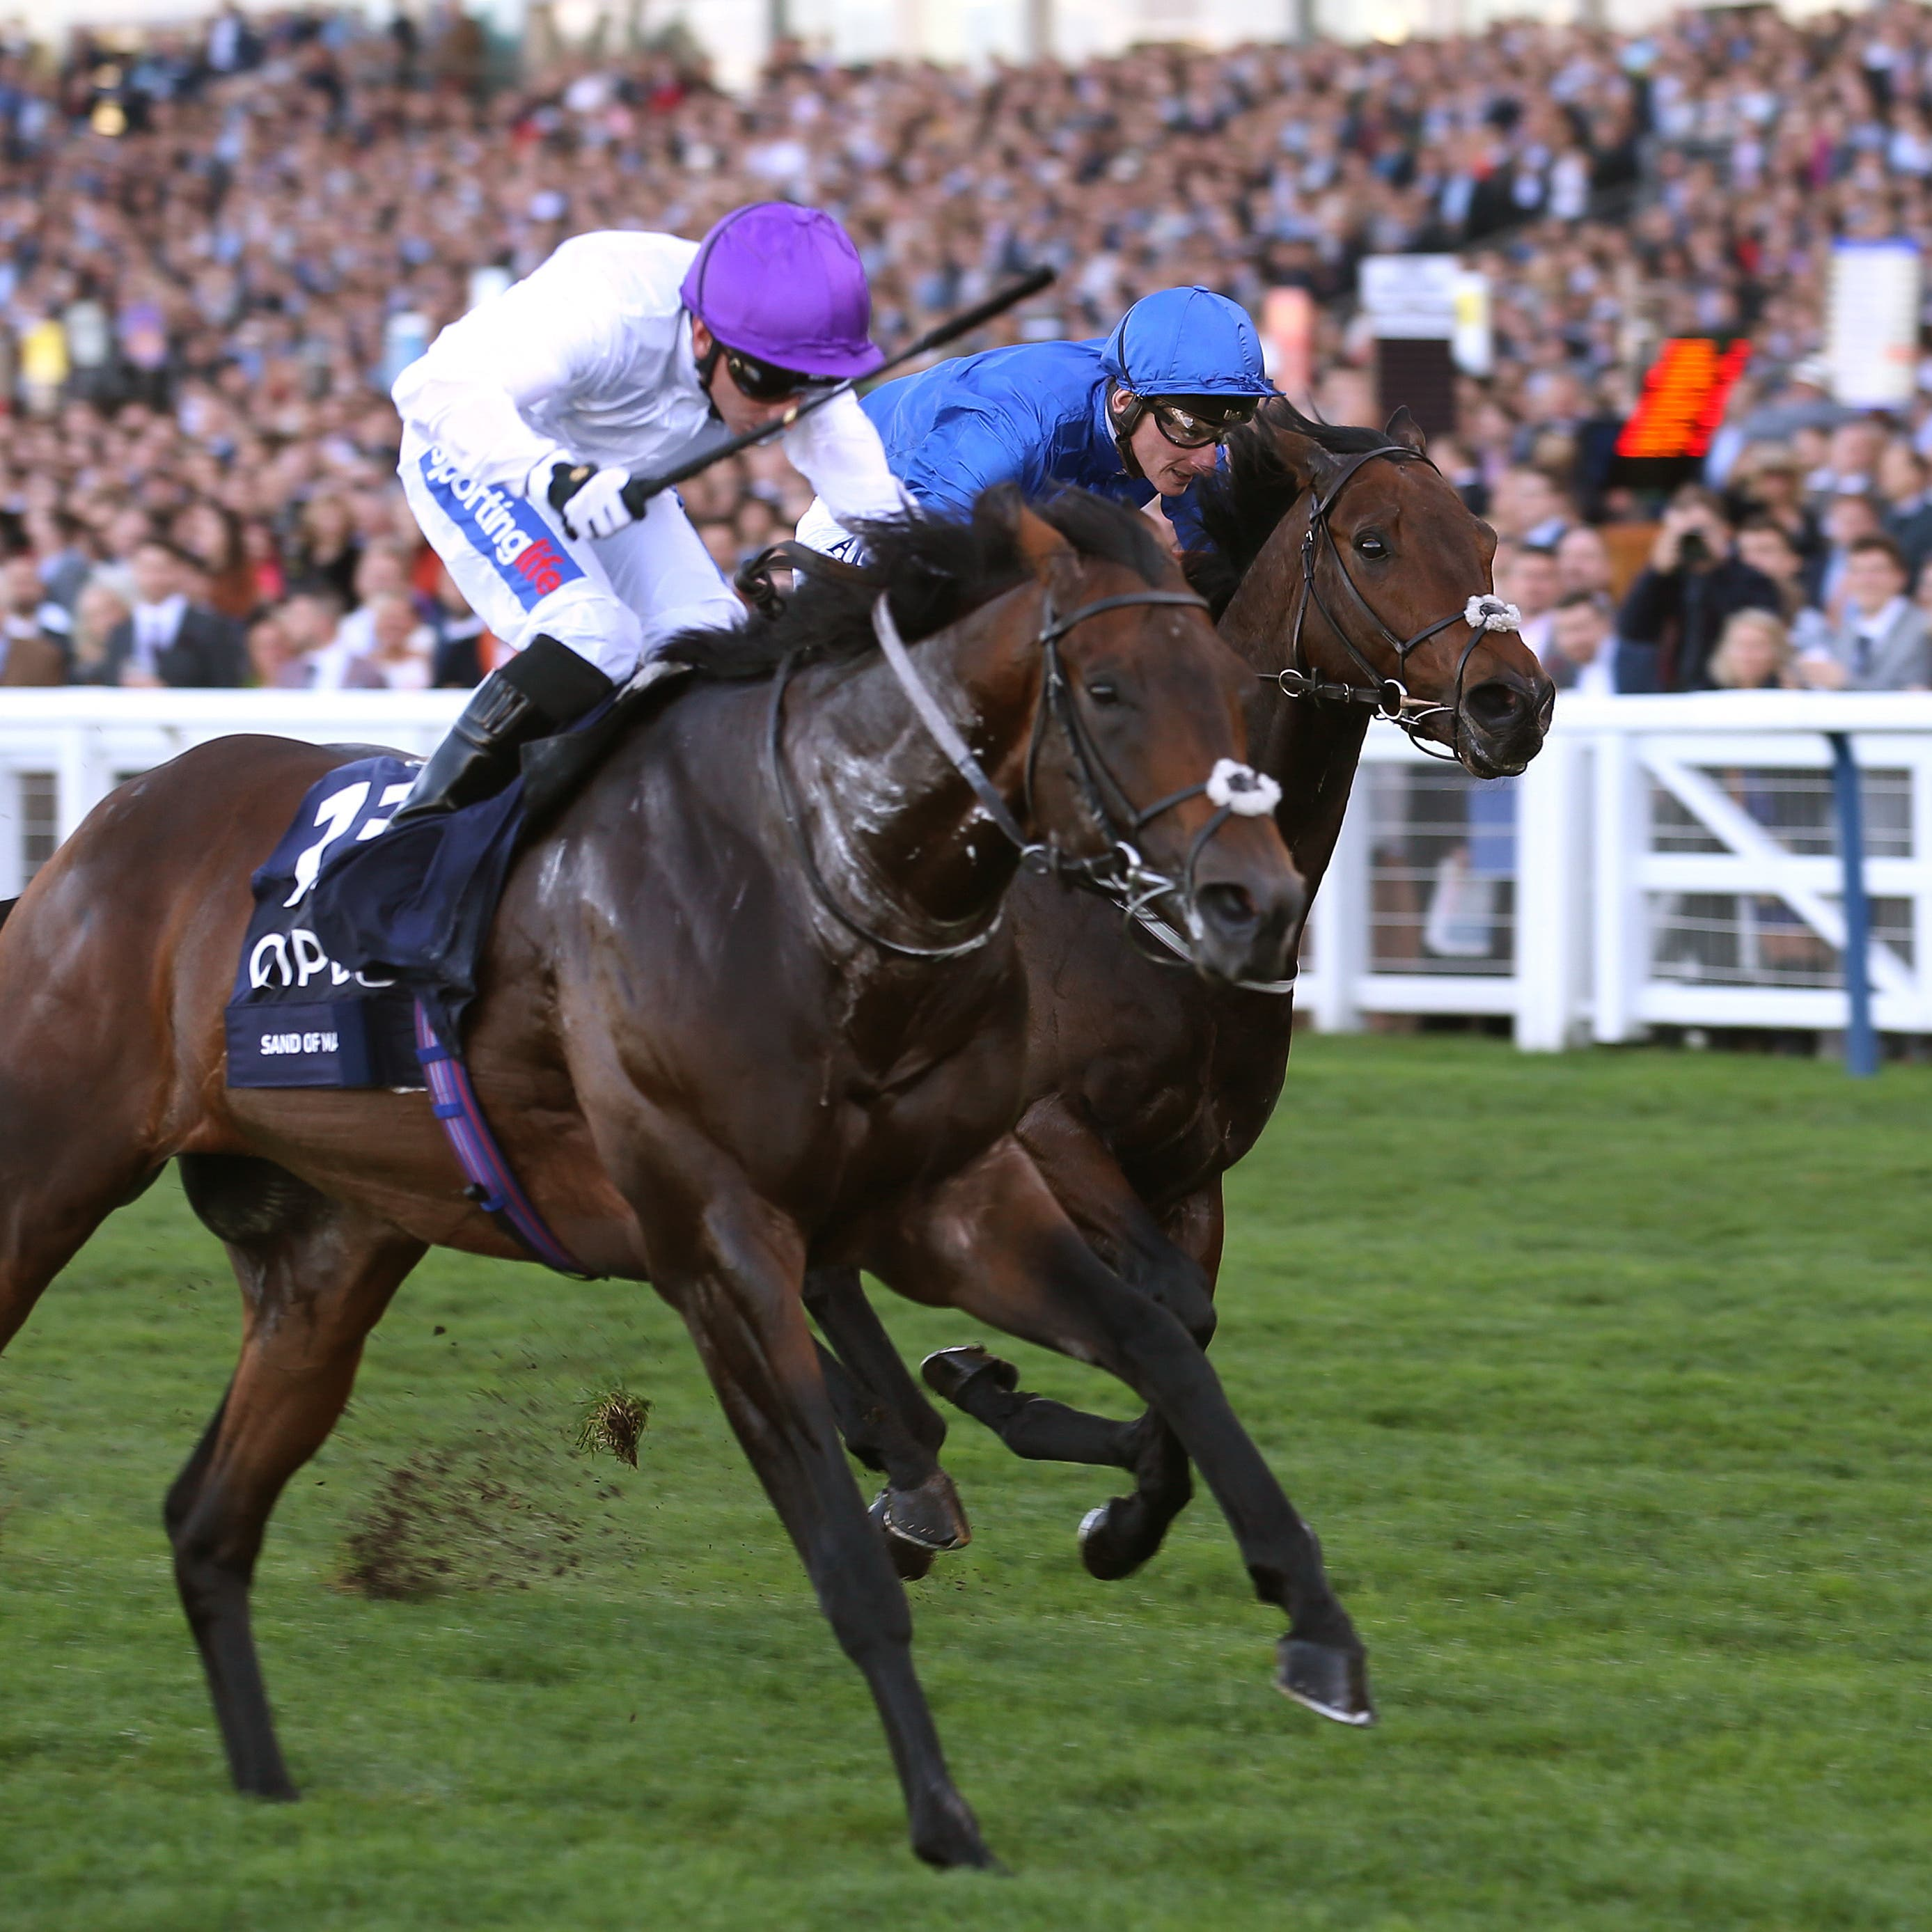 Sands Of Mali and Paul Hanagan win the British Champion Sprint Stakes at Ascot